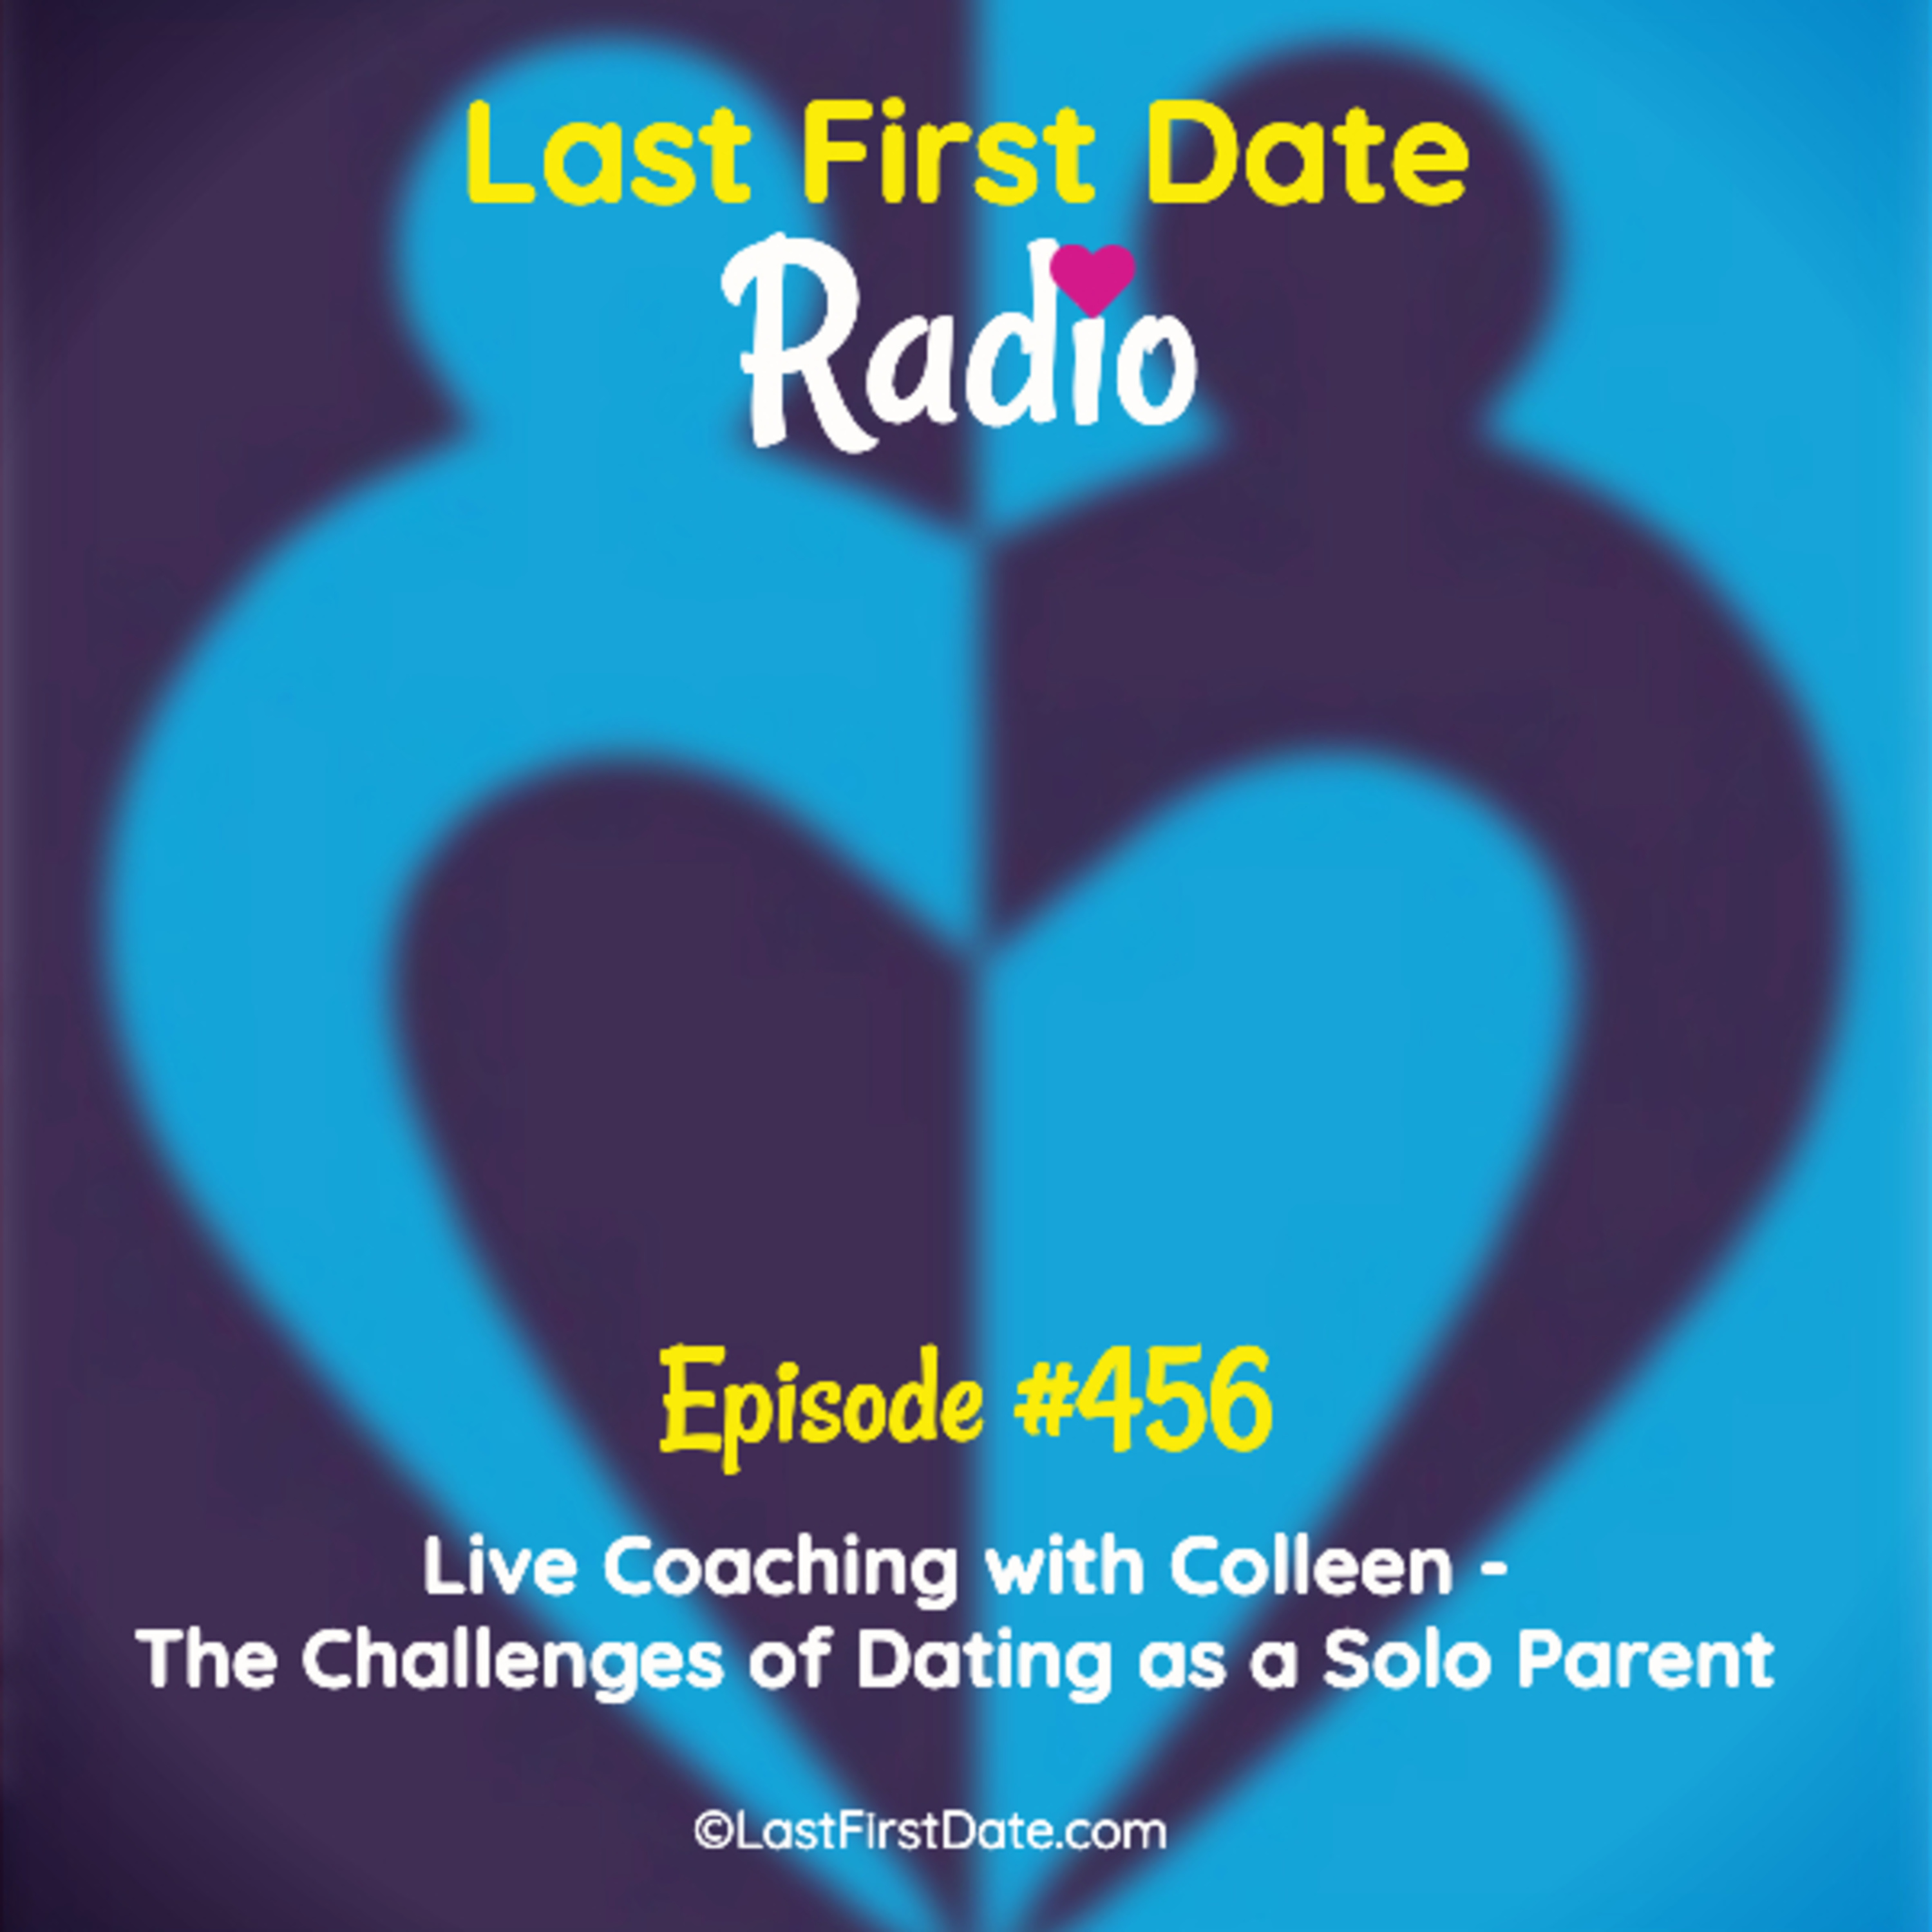 Last First Date Radio - EP 456: Live Coaching with Colleen - The Challenges of Dating as a Solo Parent